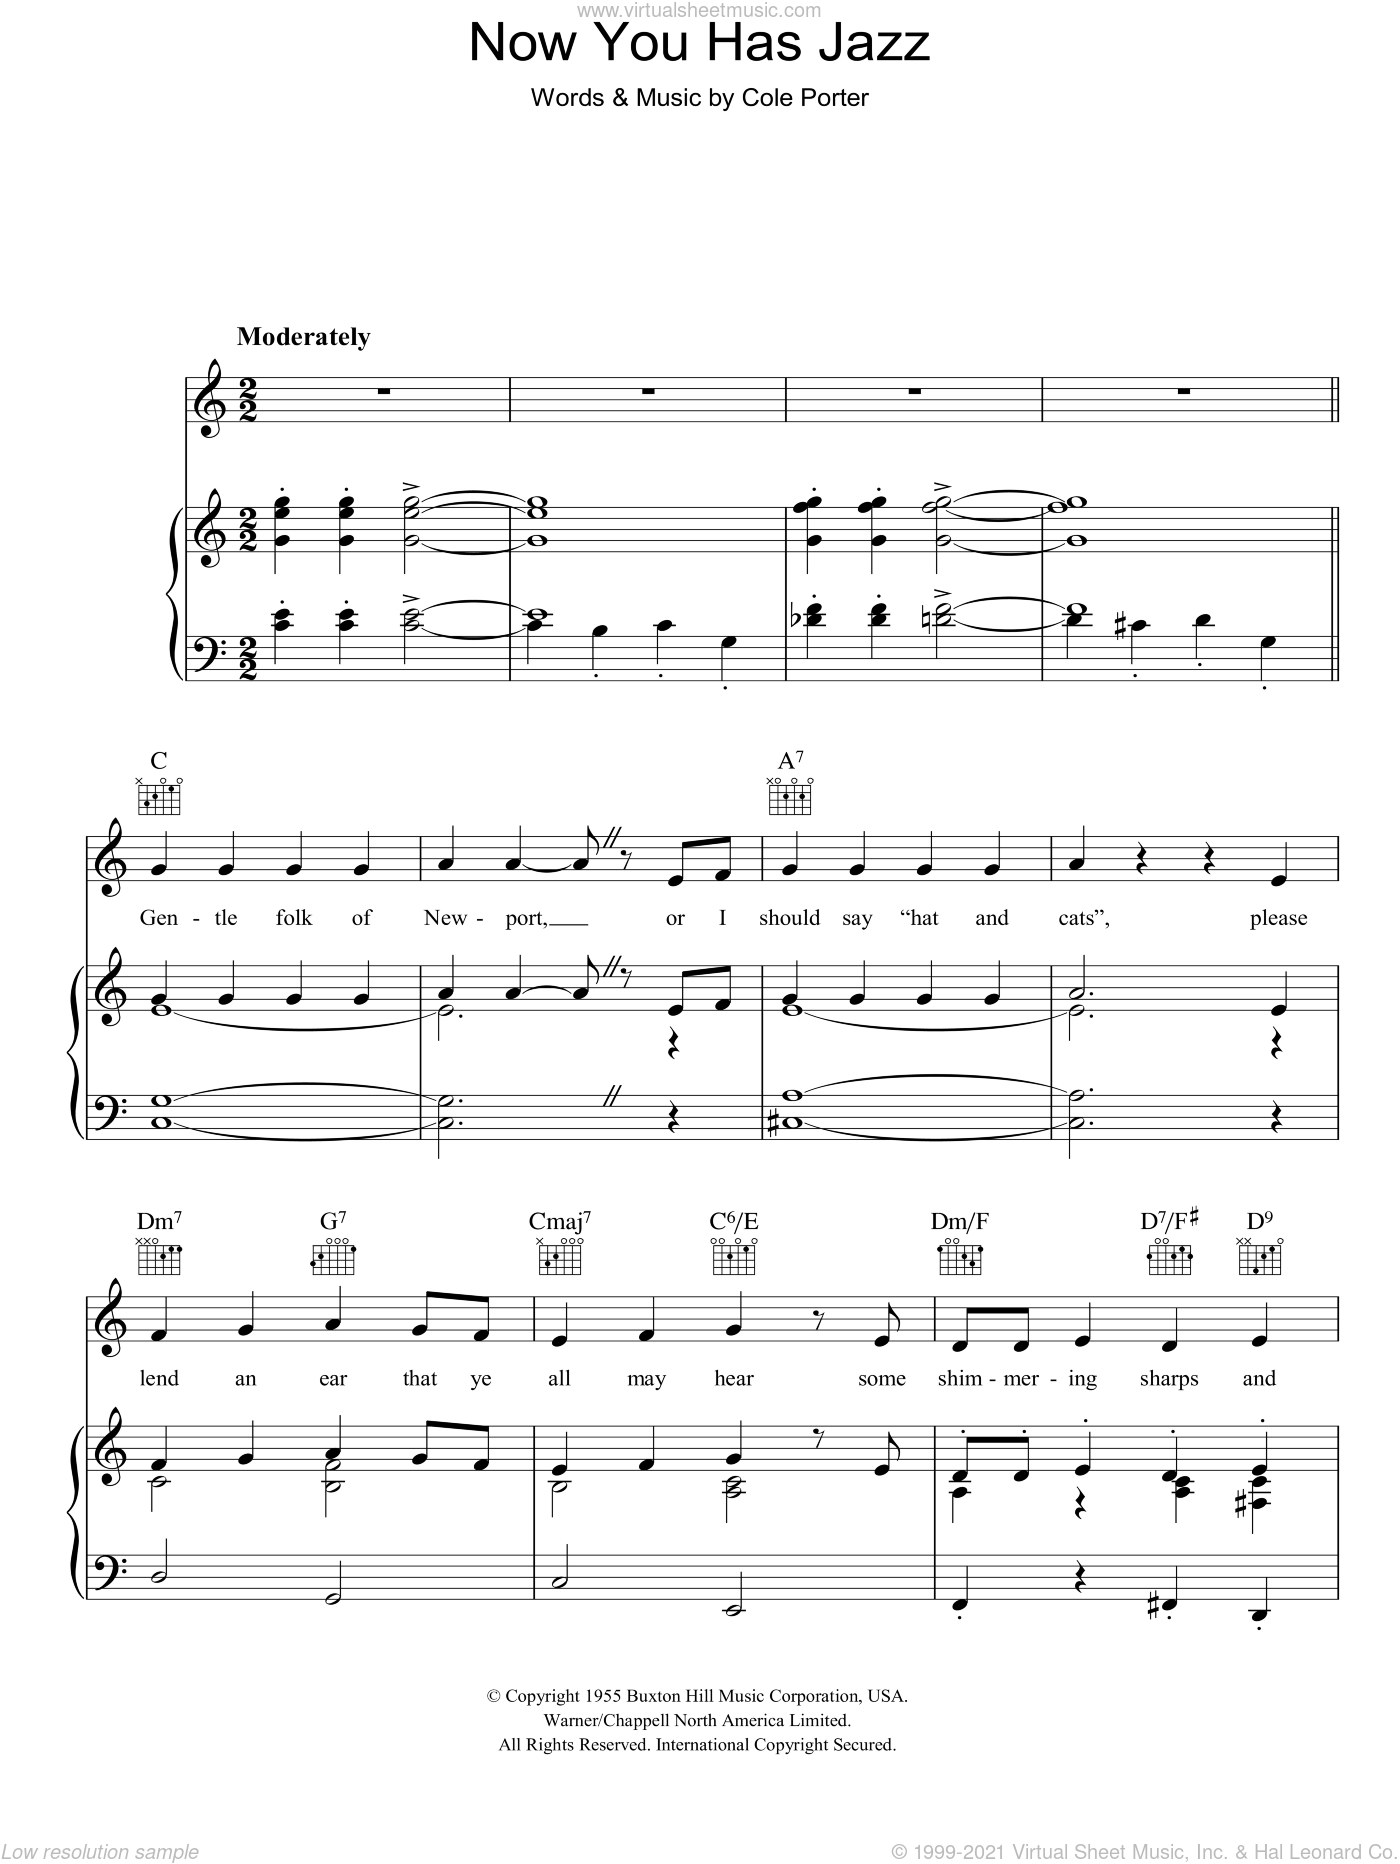 Now You Has Jazz sheet music for voice, piano or guitar by Cole Porter. Score Image Preview.